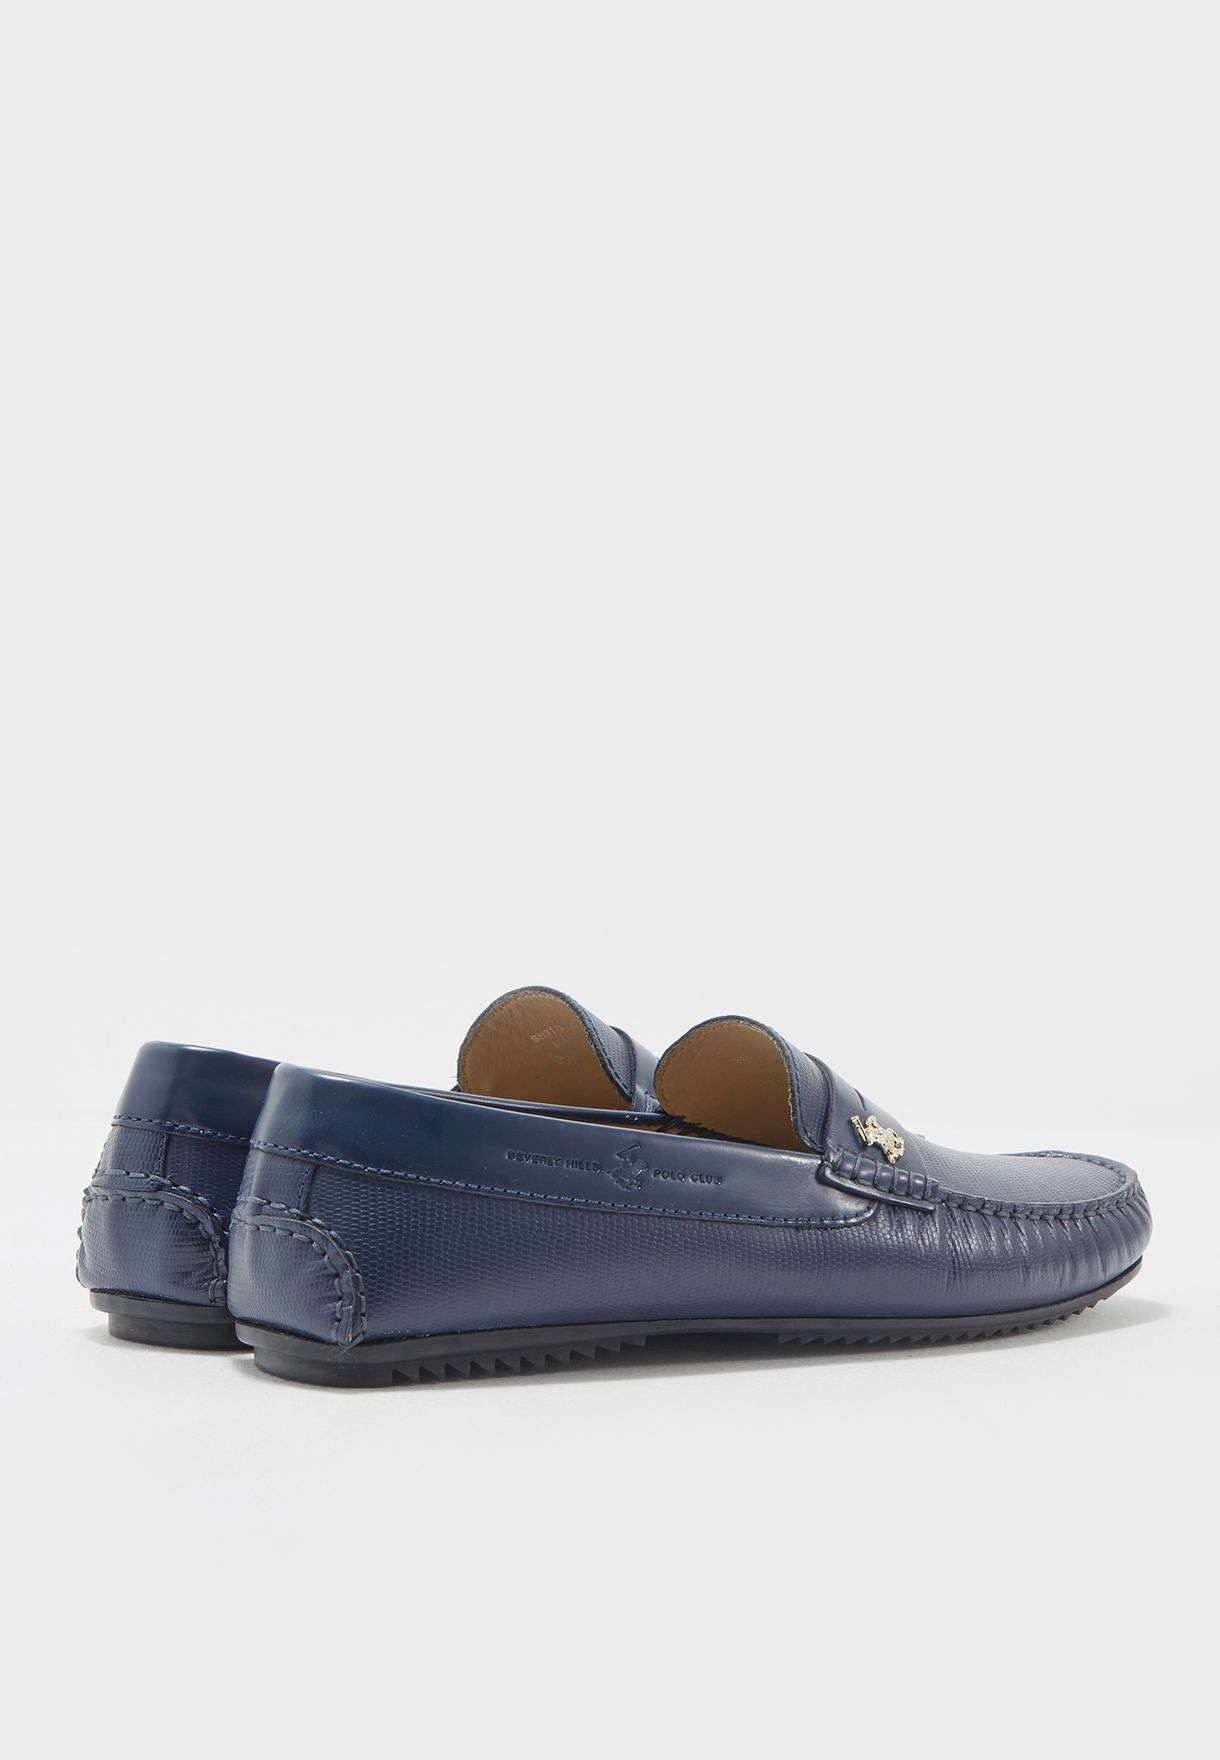 e2f6ed772b9 Shop Beverly Hills Polo Club navy Leather Loafers BP SH9128 for ...